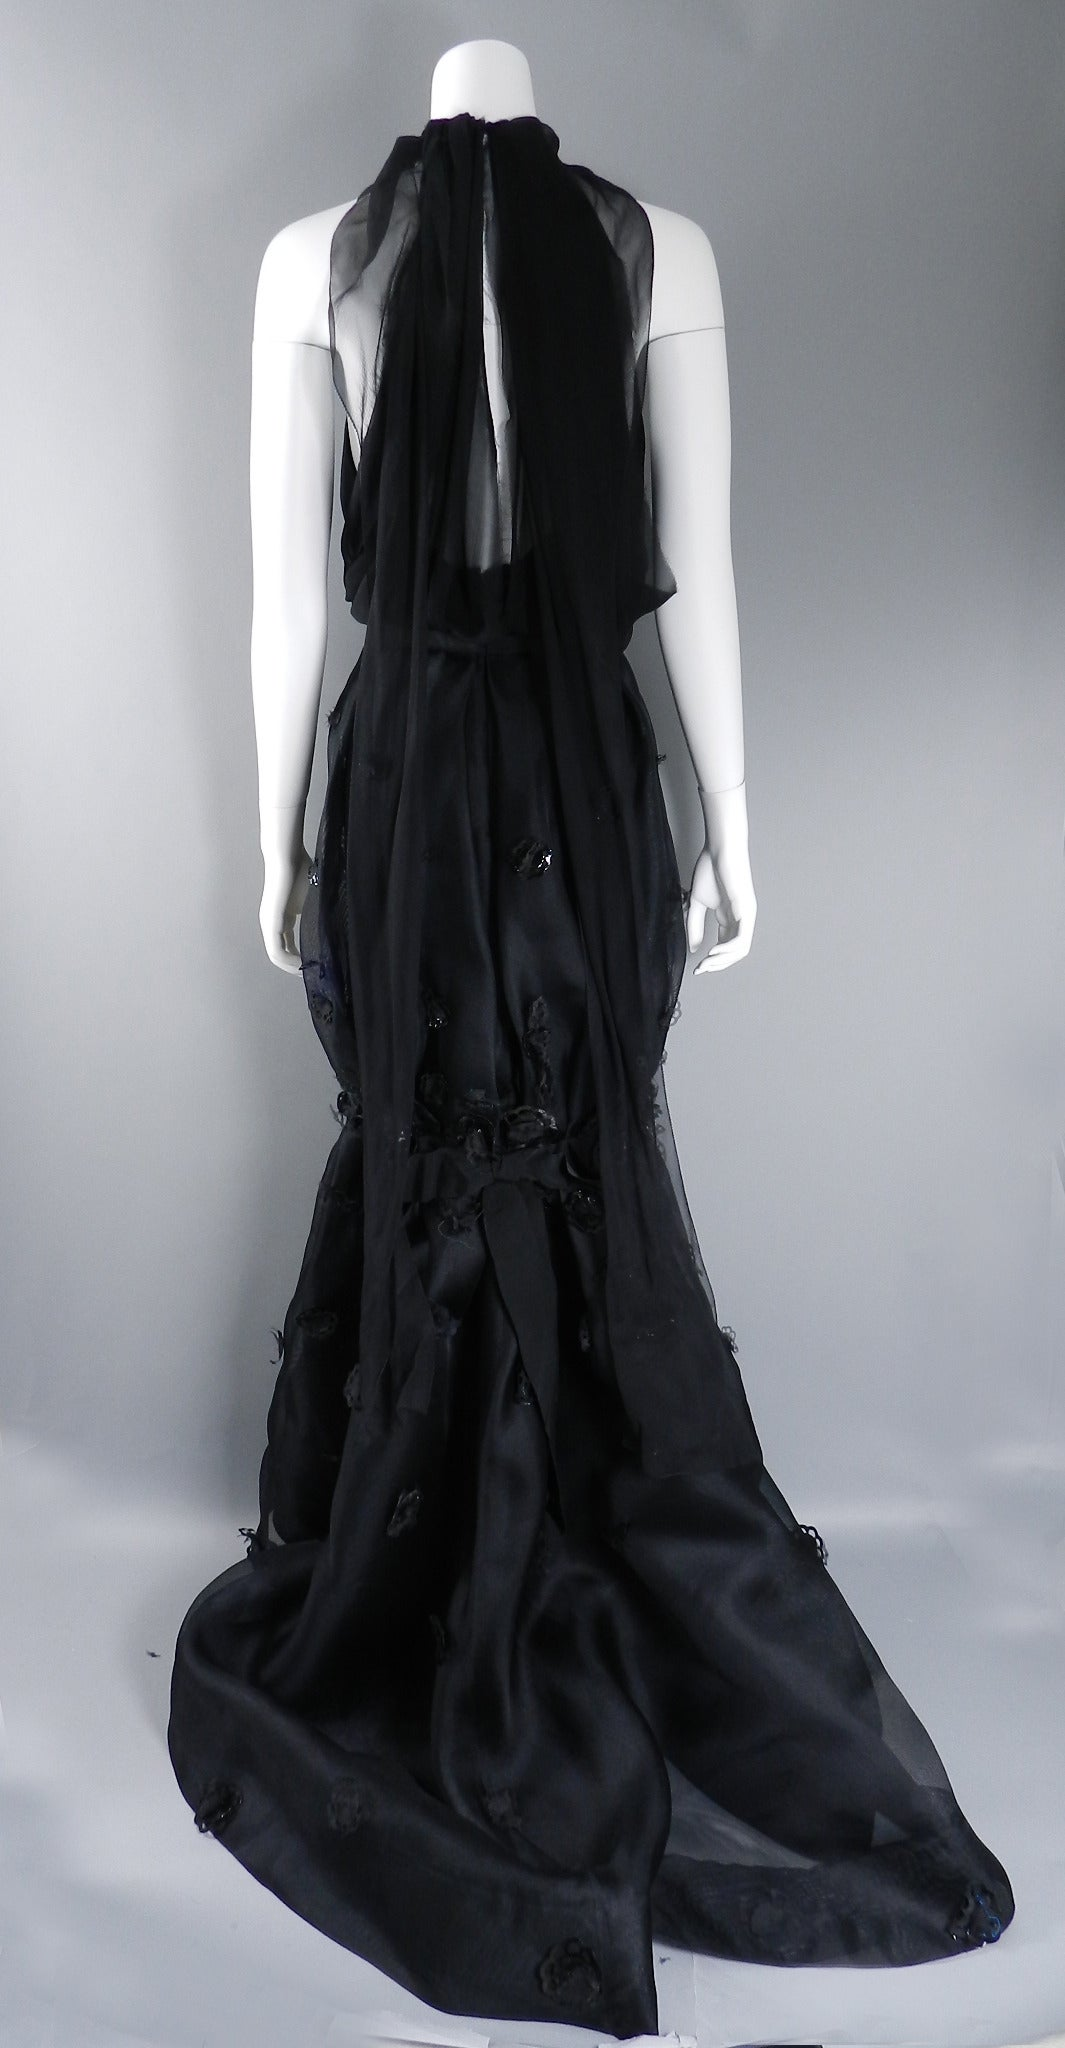 Nina Ricci 2012 Spring Black Embellished Silk Halter Gown In Excellent Condition For Sale In Toronto, ON